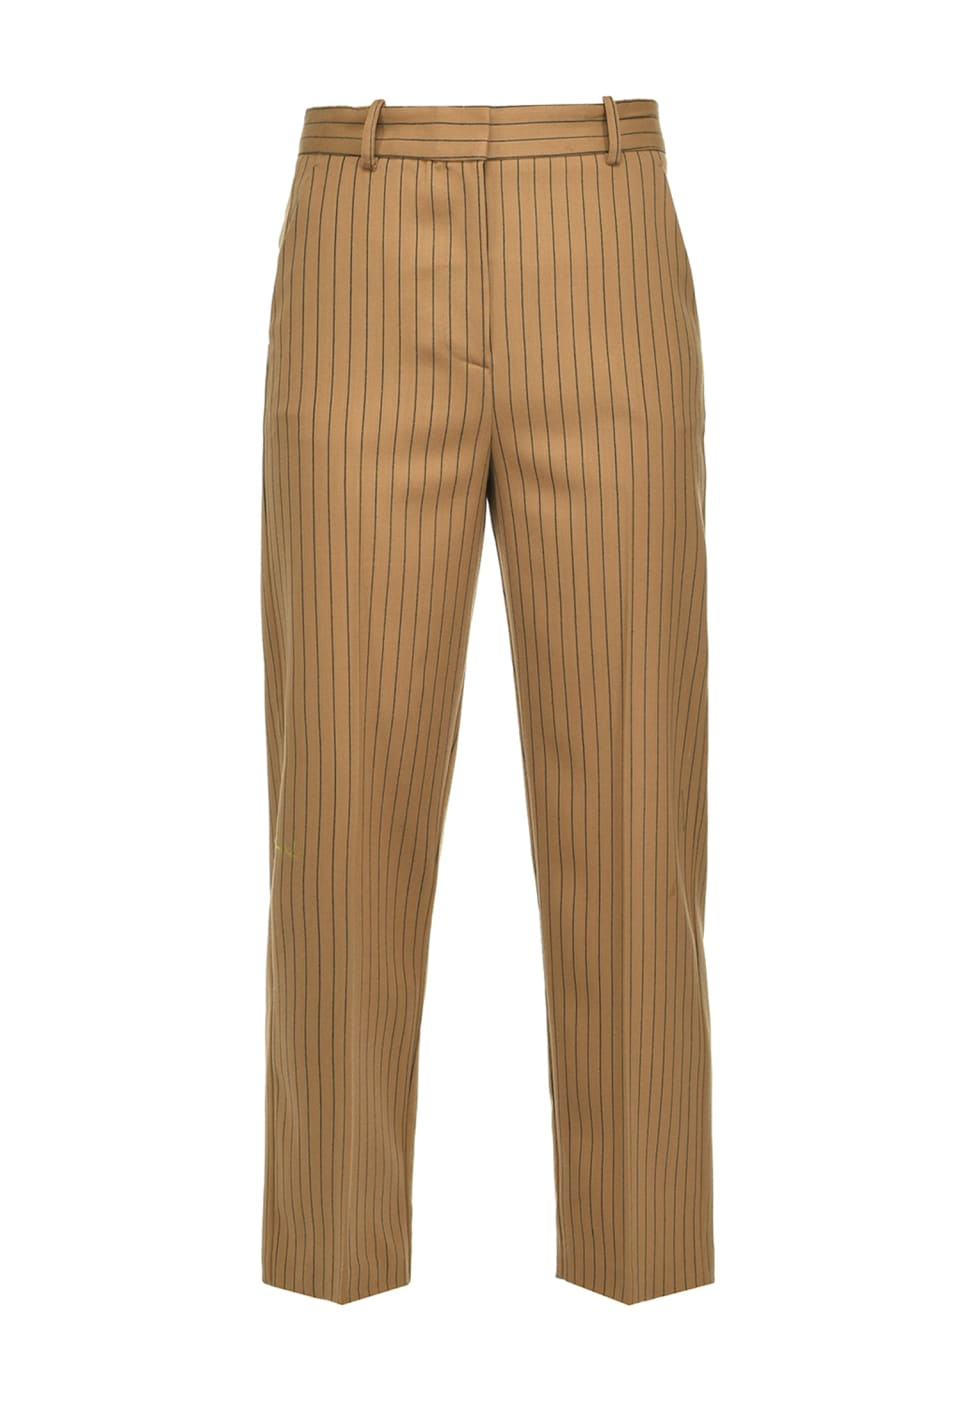 Straight pinstriped trousers